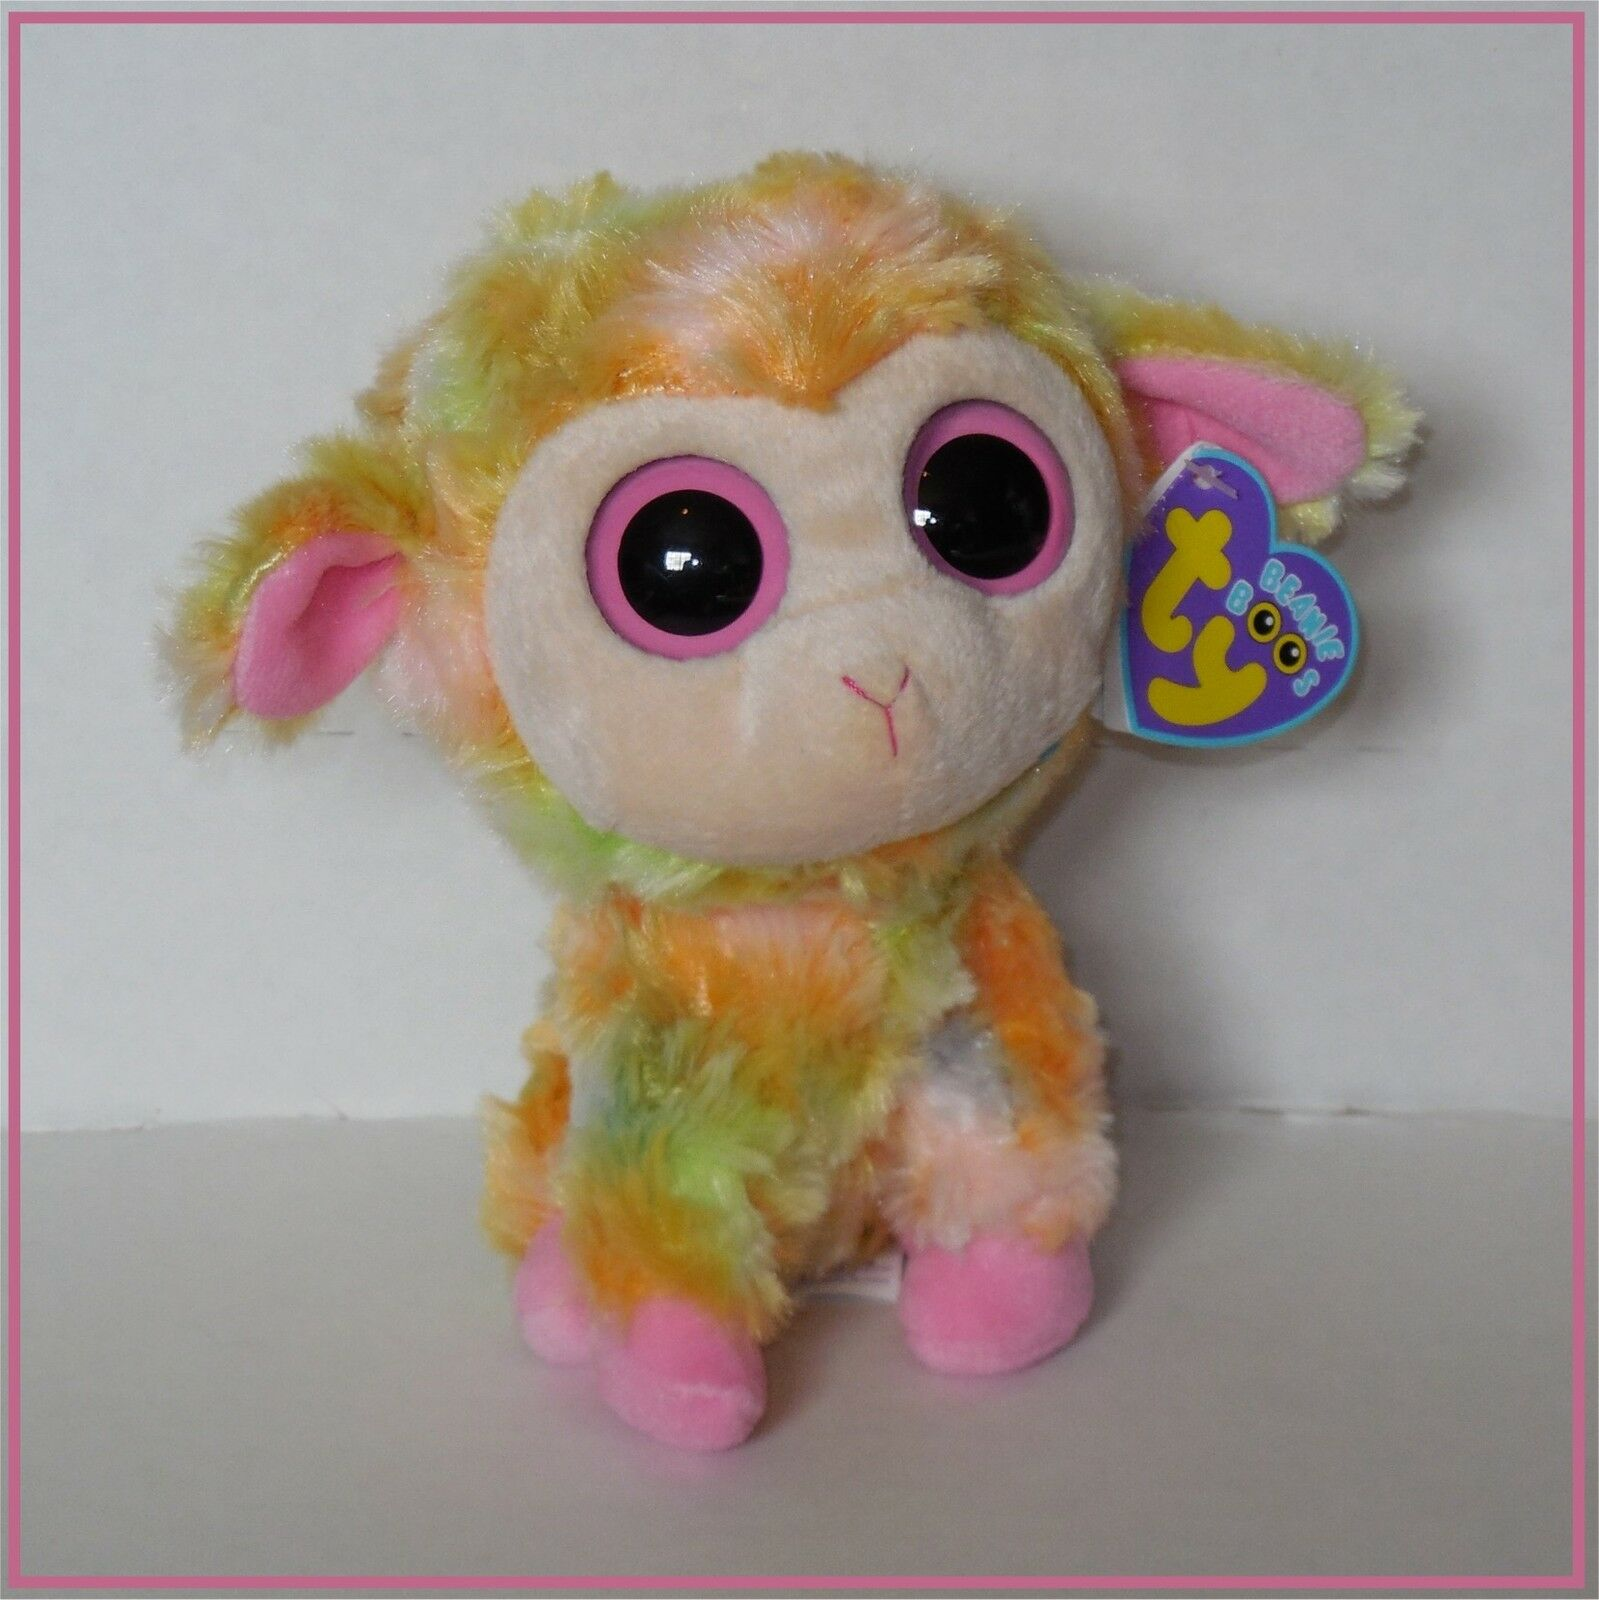 NWT Ty Beanie Boo Blossom pink yellow multi-colord lamb Easter plush toy 6